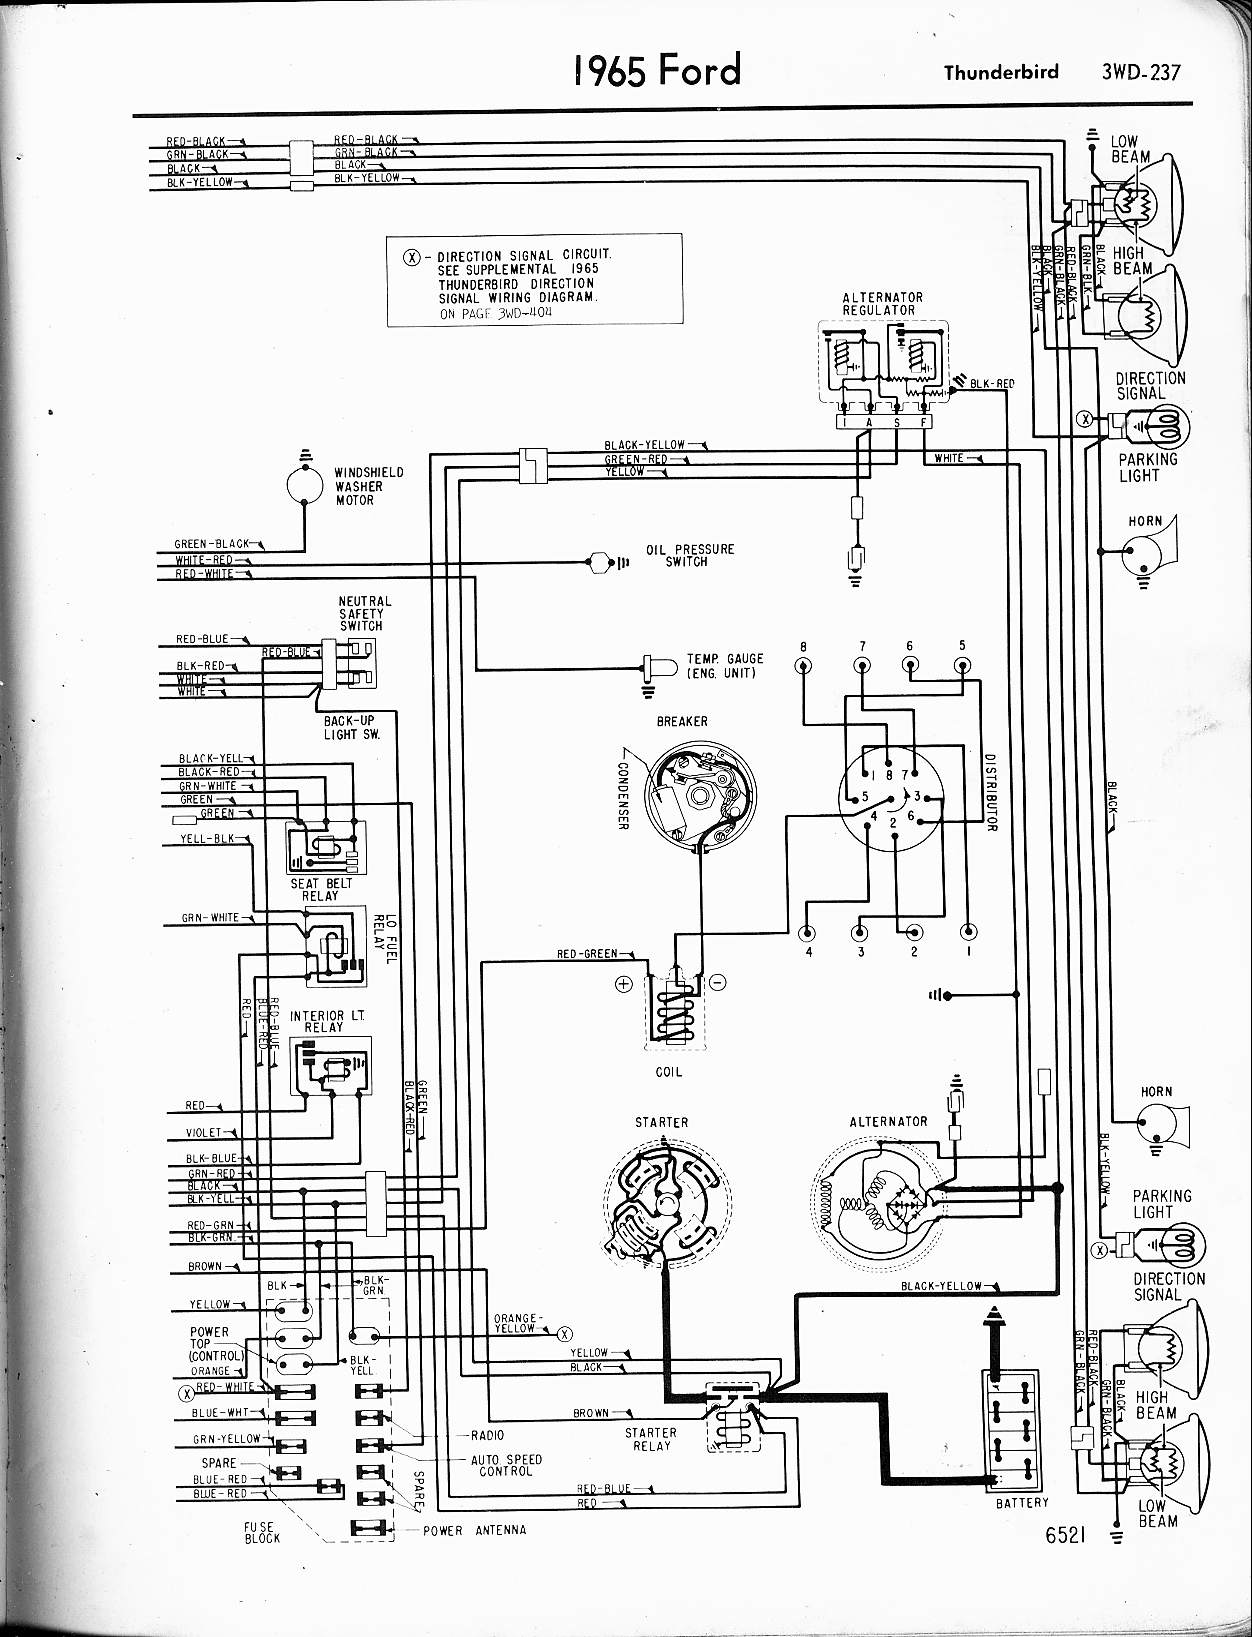 1965 ford wiring schematic wiring diagrams best 57 65 ford wiring diagrams 1977 ford wiring schematic 1965 ford wiring schematic